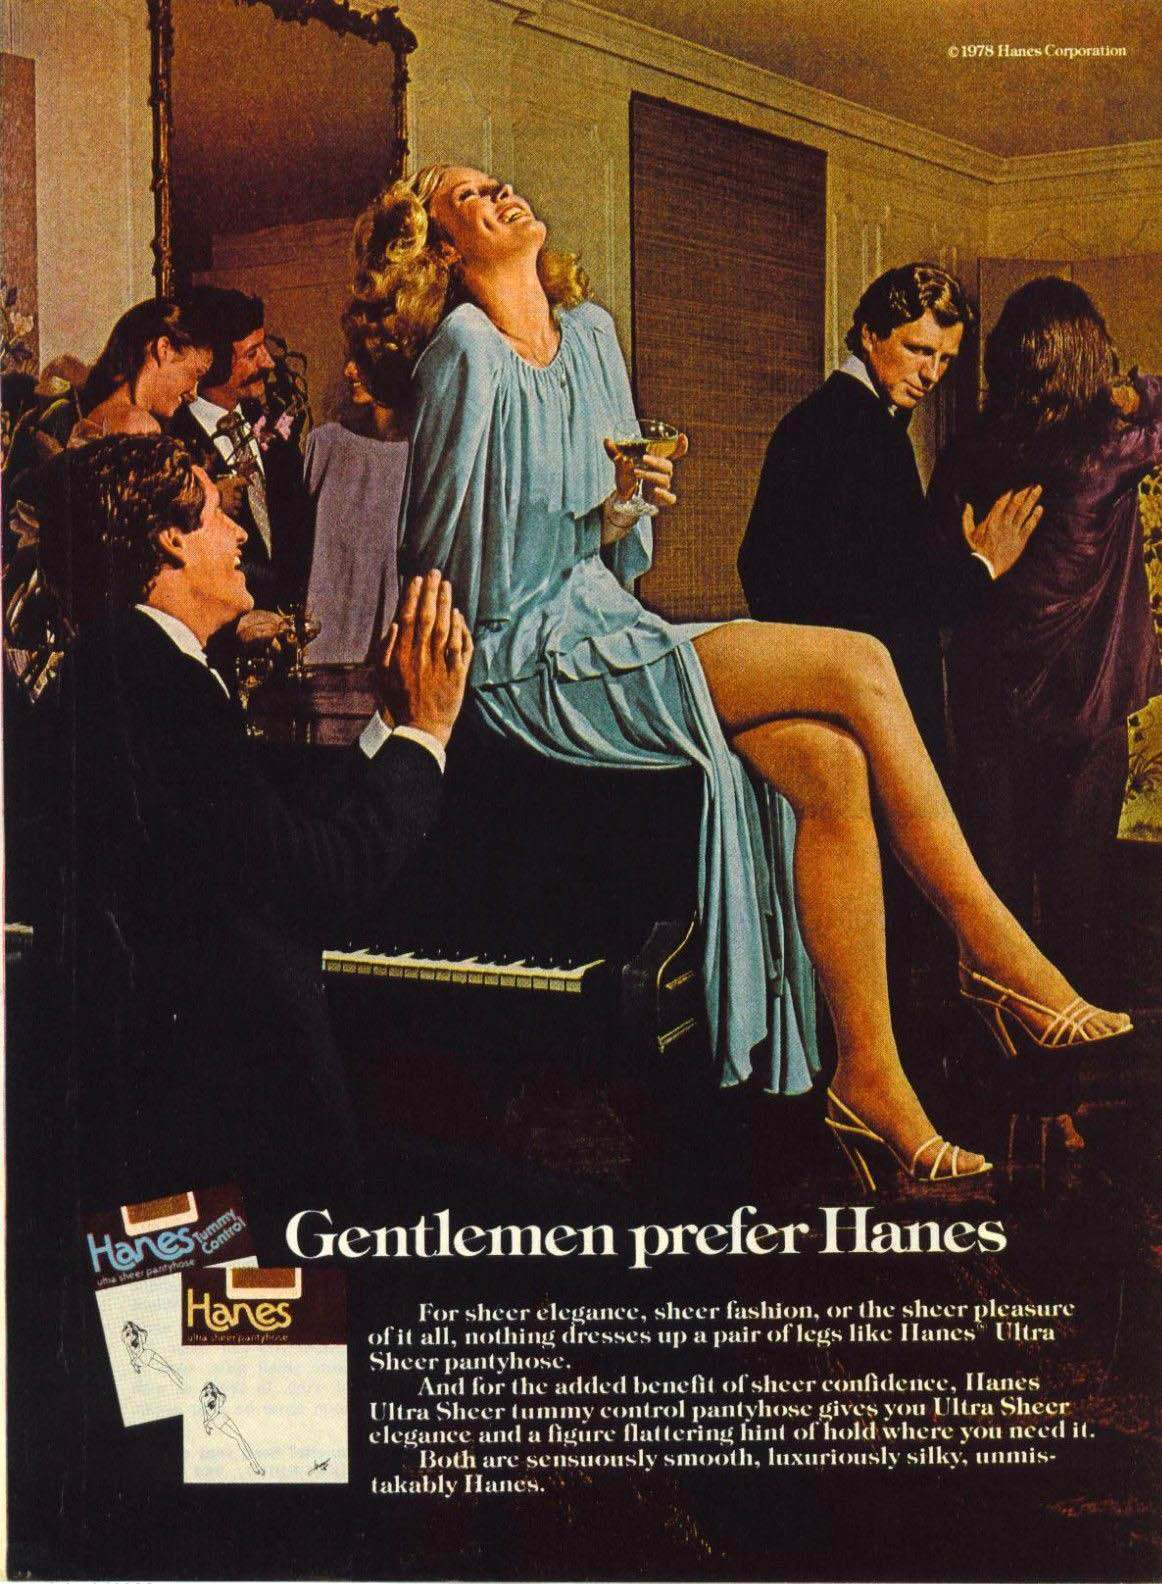 The Sexist Gentlemen Prefer Hanes Adverts Of The 1970s